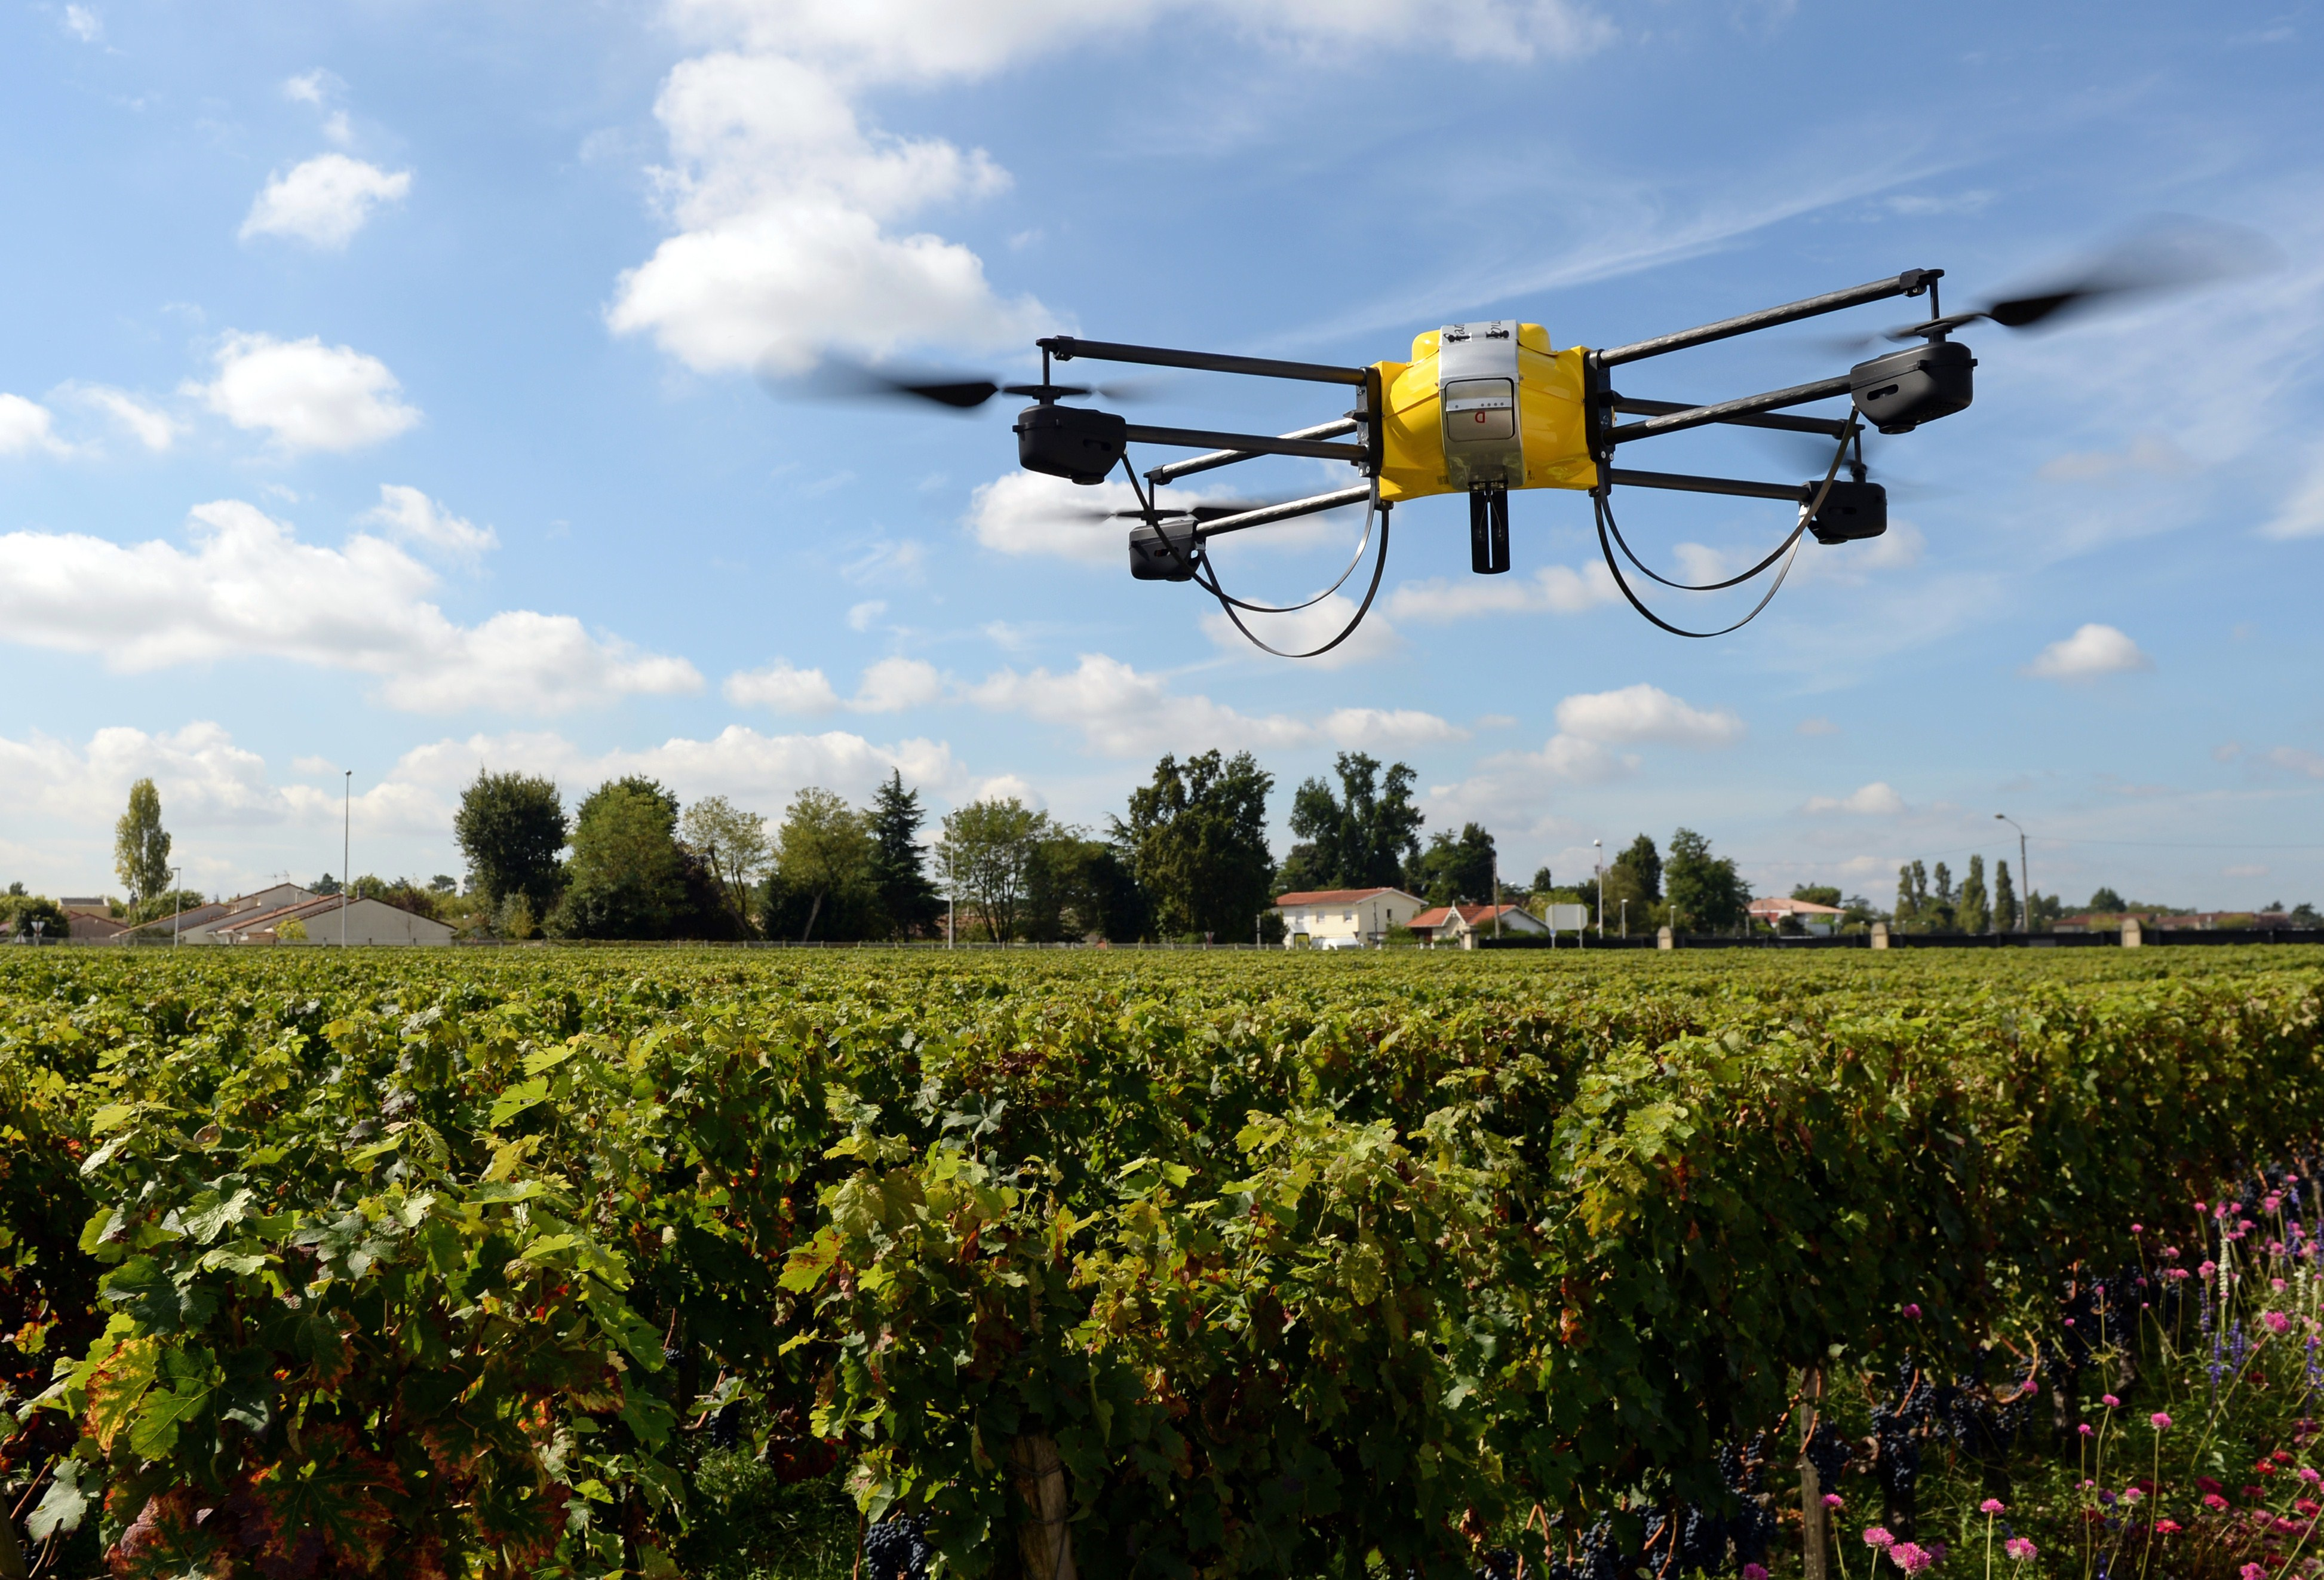 A photo taken on September 9, 2014 shows a drone flying over vineyards of the Pape Clement castle in the soutwestern French town of Pessac.